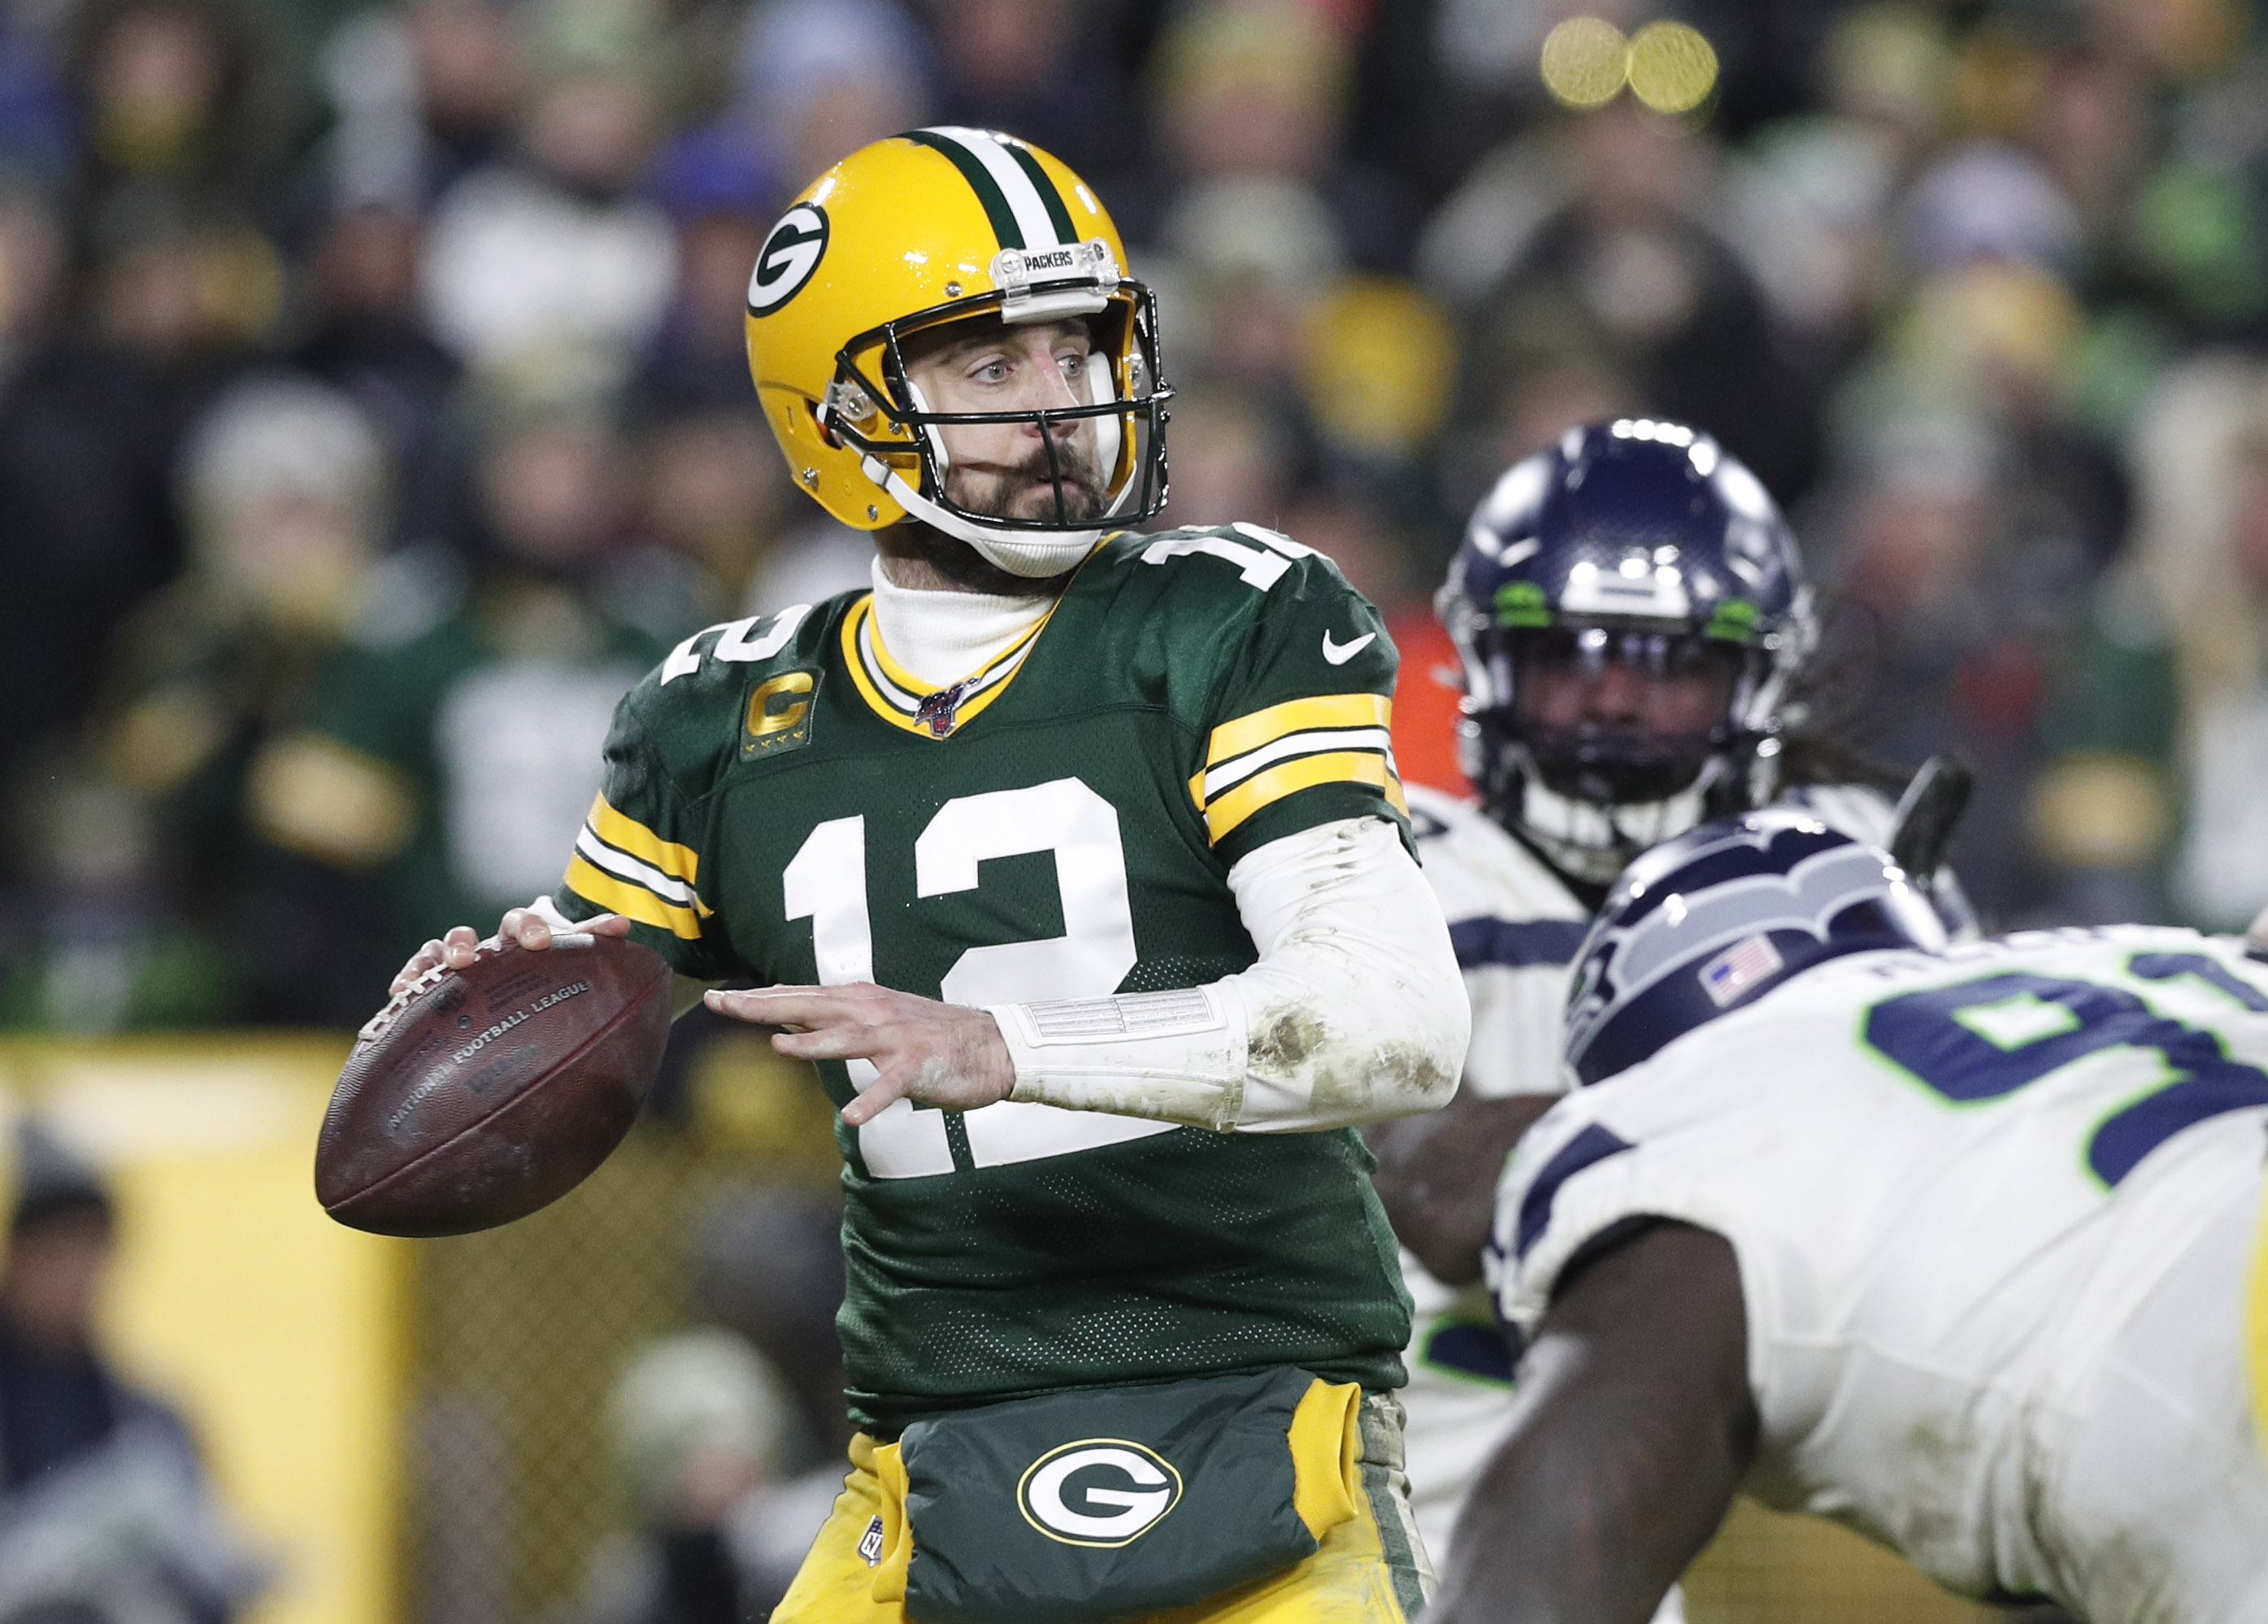 Green Bay Packers quarterback Aaron Rodgers throws a pass against the Seattle Seahawks in the fourth quarter of a NFC Divisional Round playoff football game at Lambeau Field.